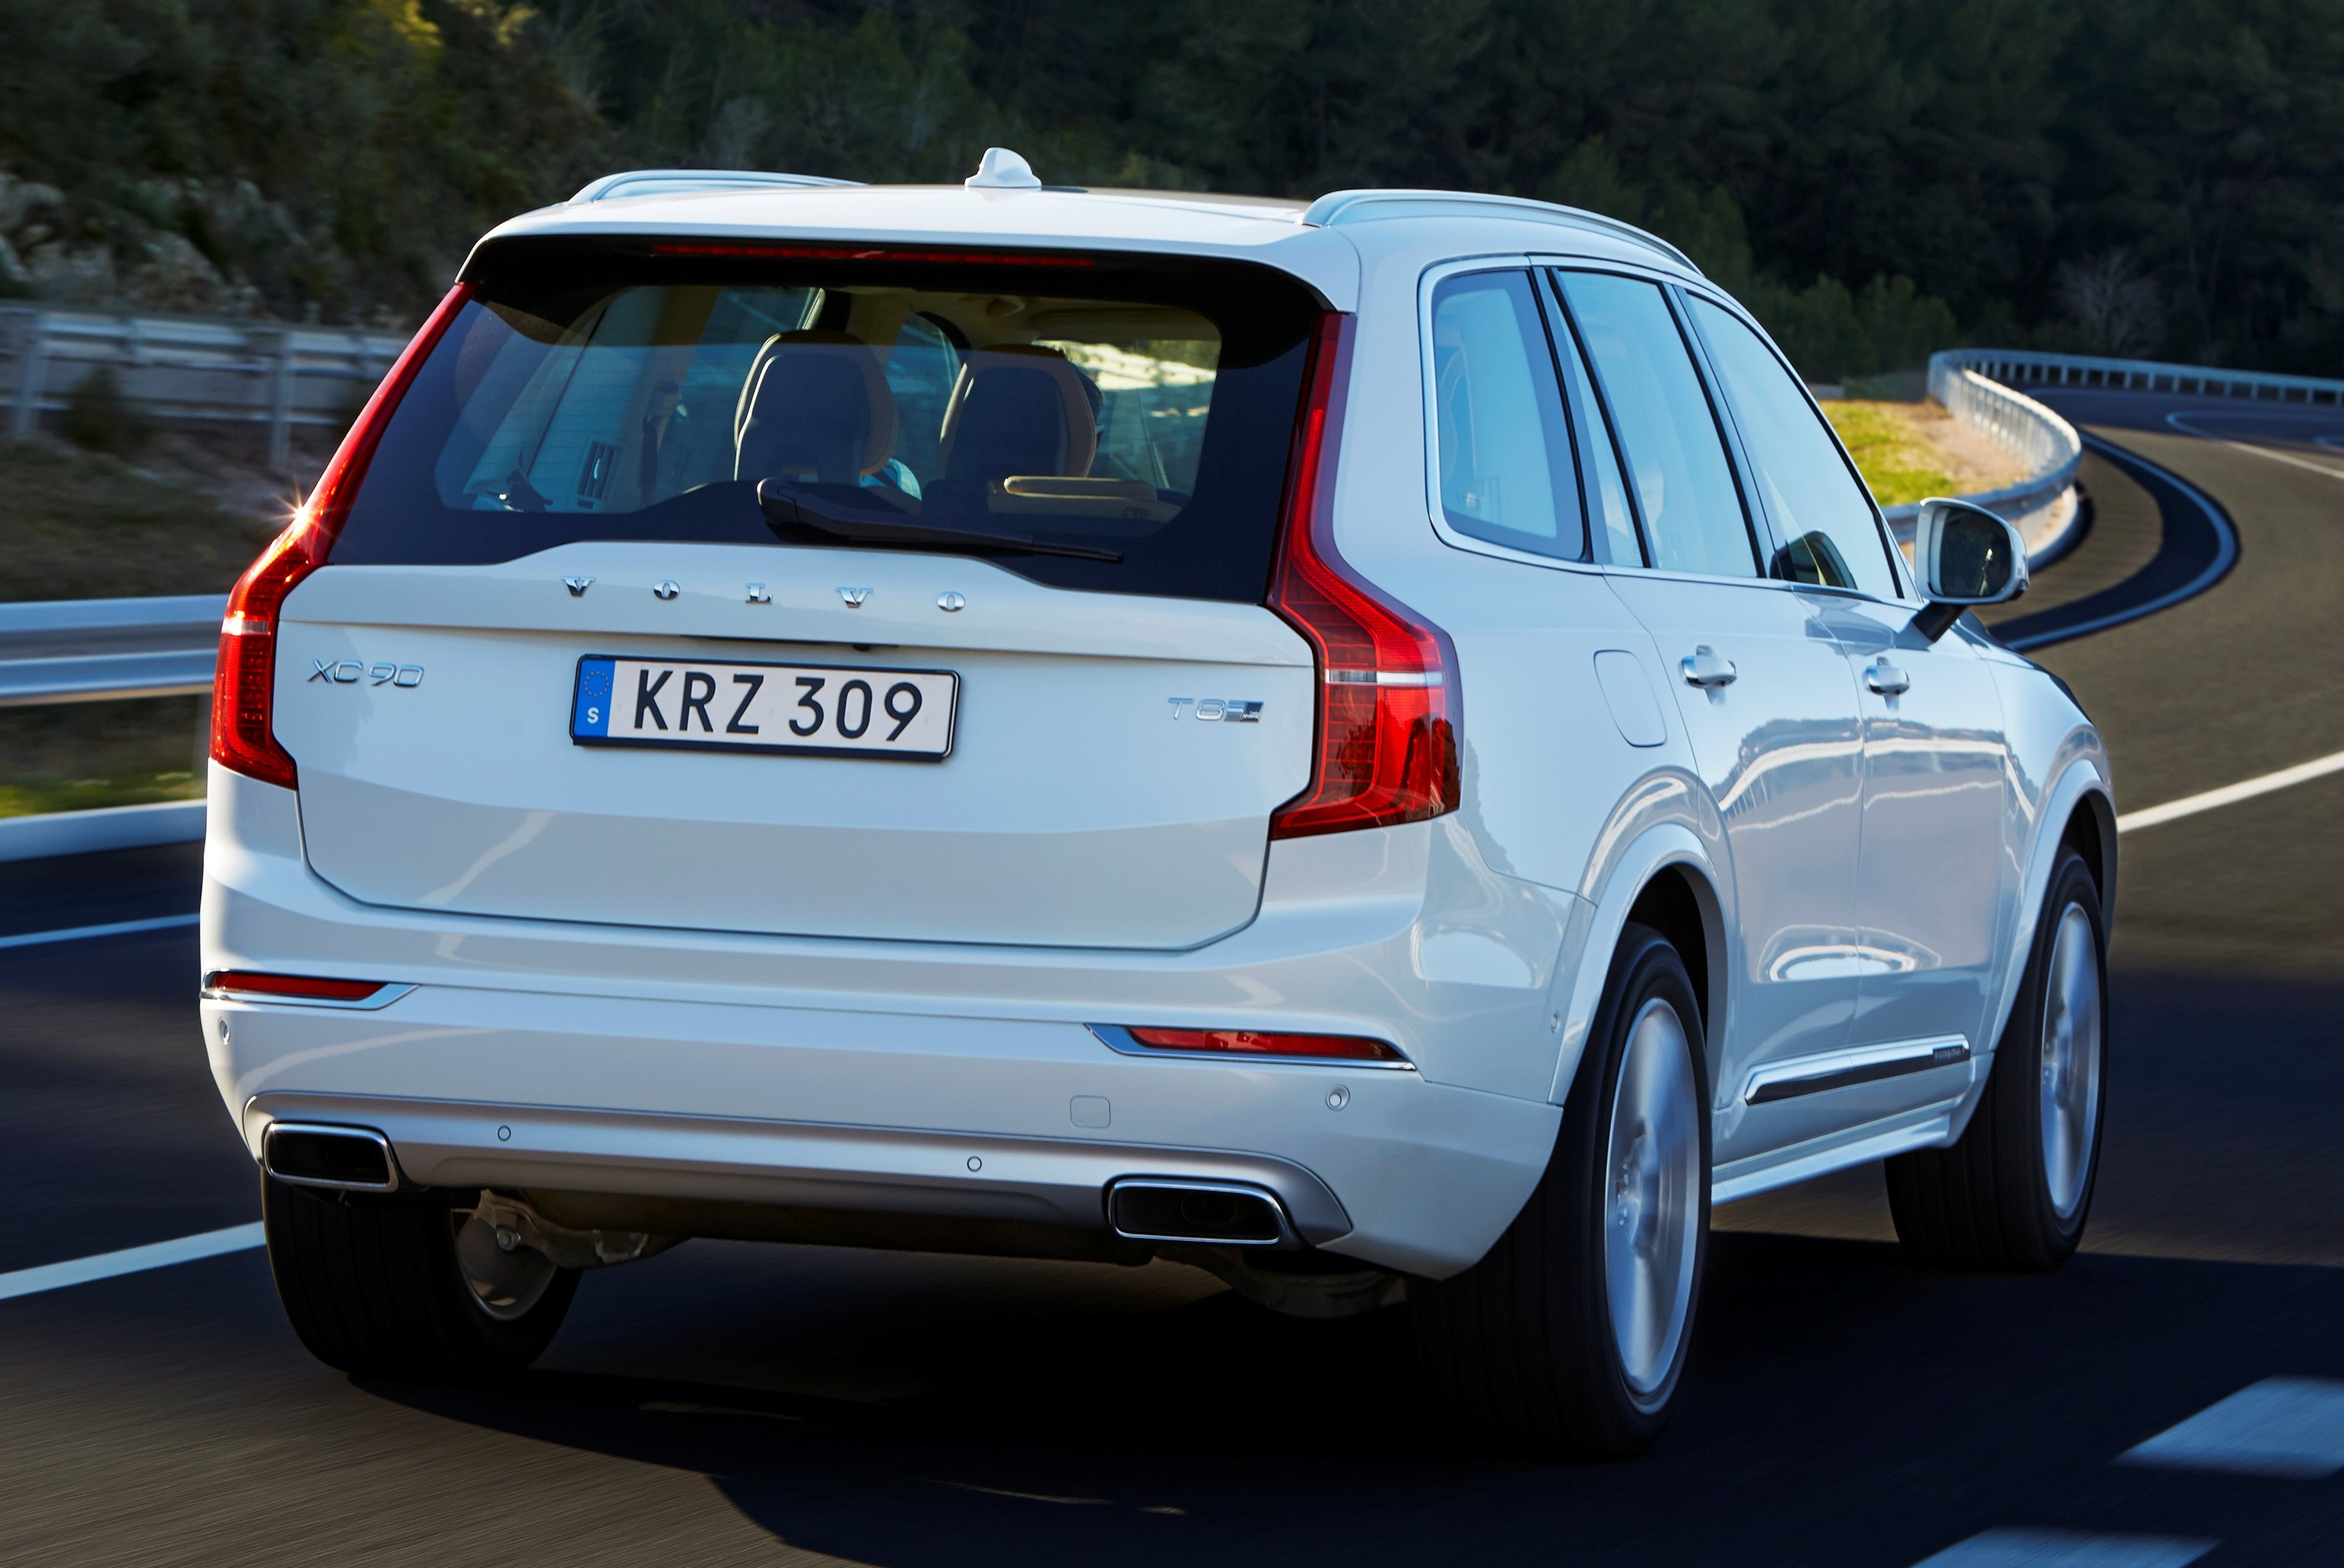 volvo xc90 t8 twin engine plug in hybrid final specs 407 hp 640 nm 2 1 l 100 km 43 km. Black Bedroom Furniture Sets. Home Design Ideas